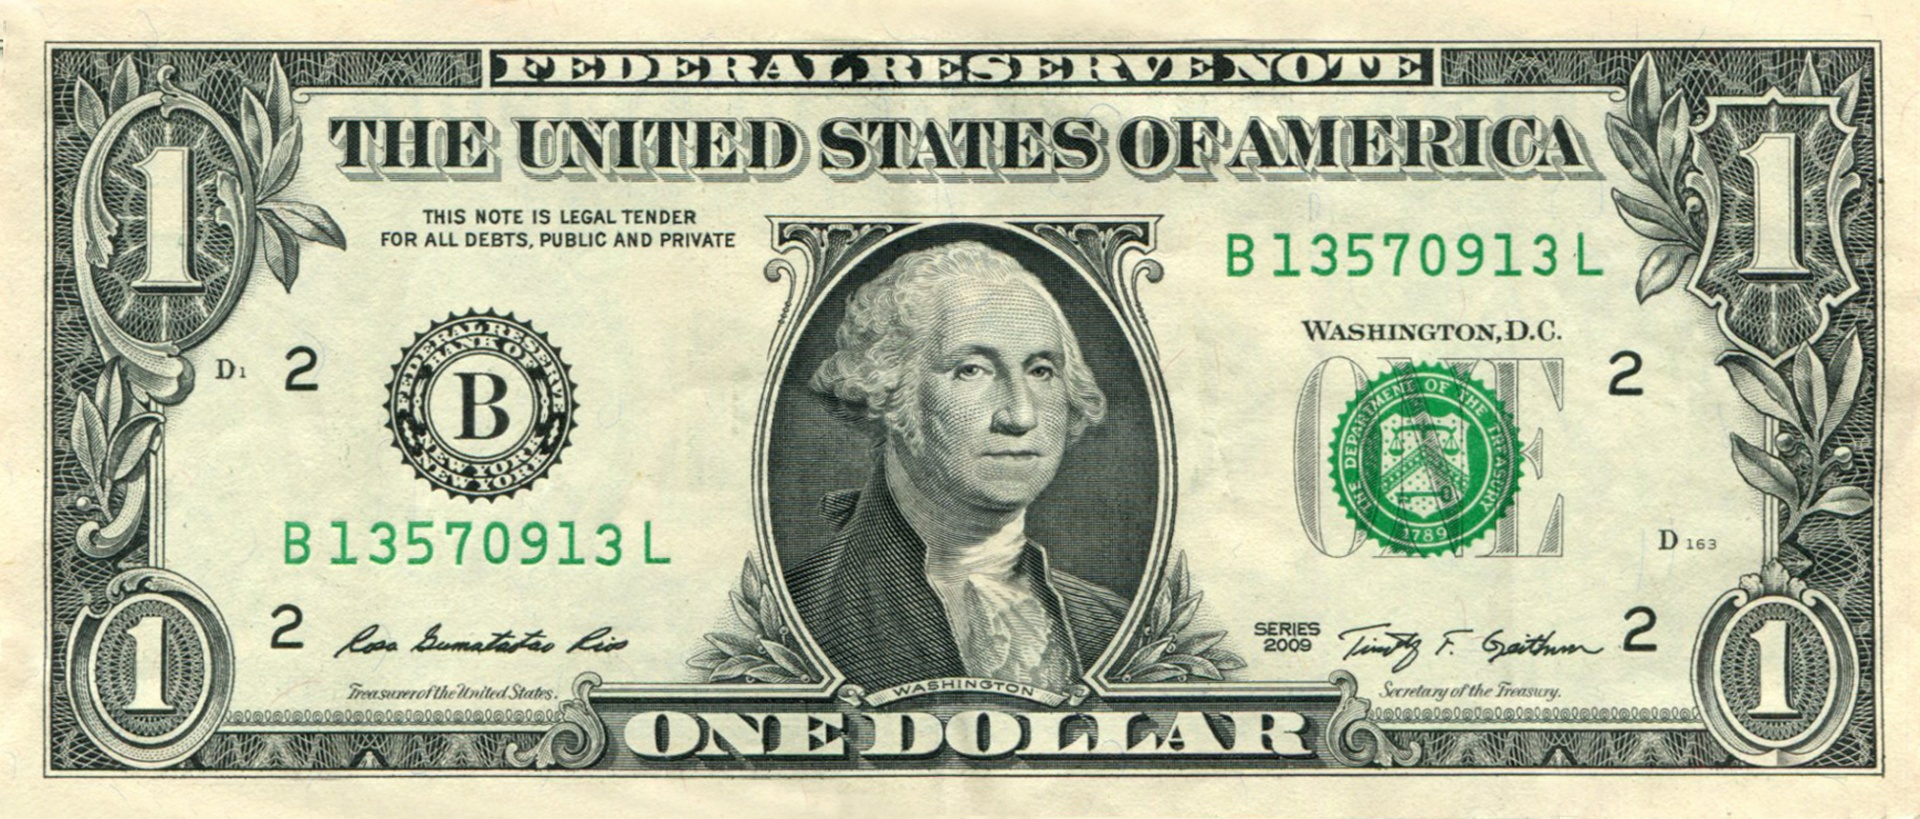 Dollar Bill Images.